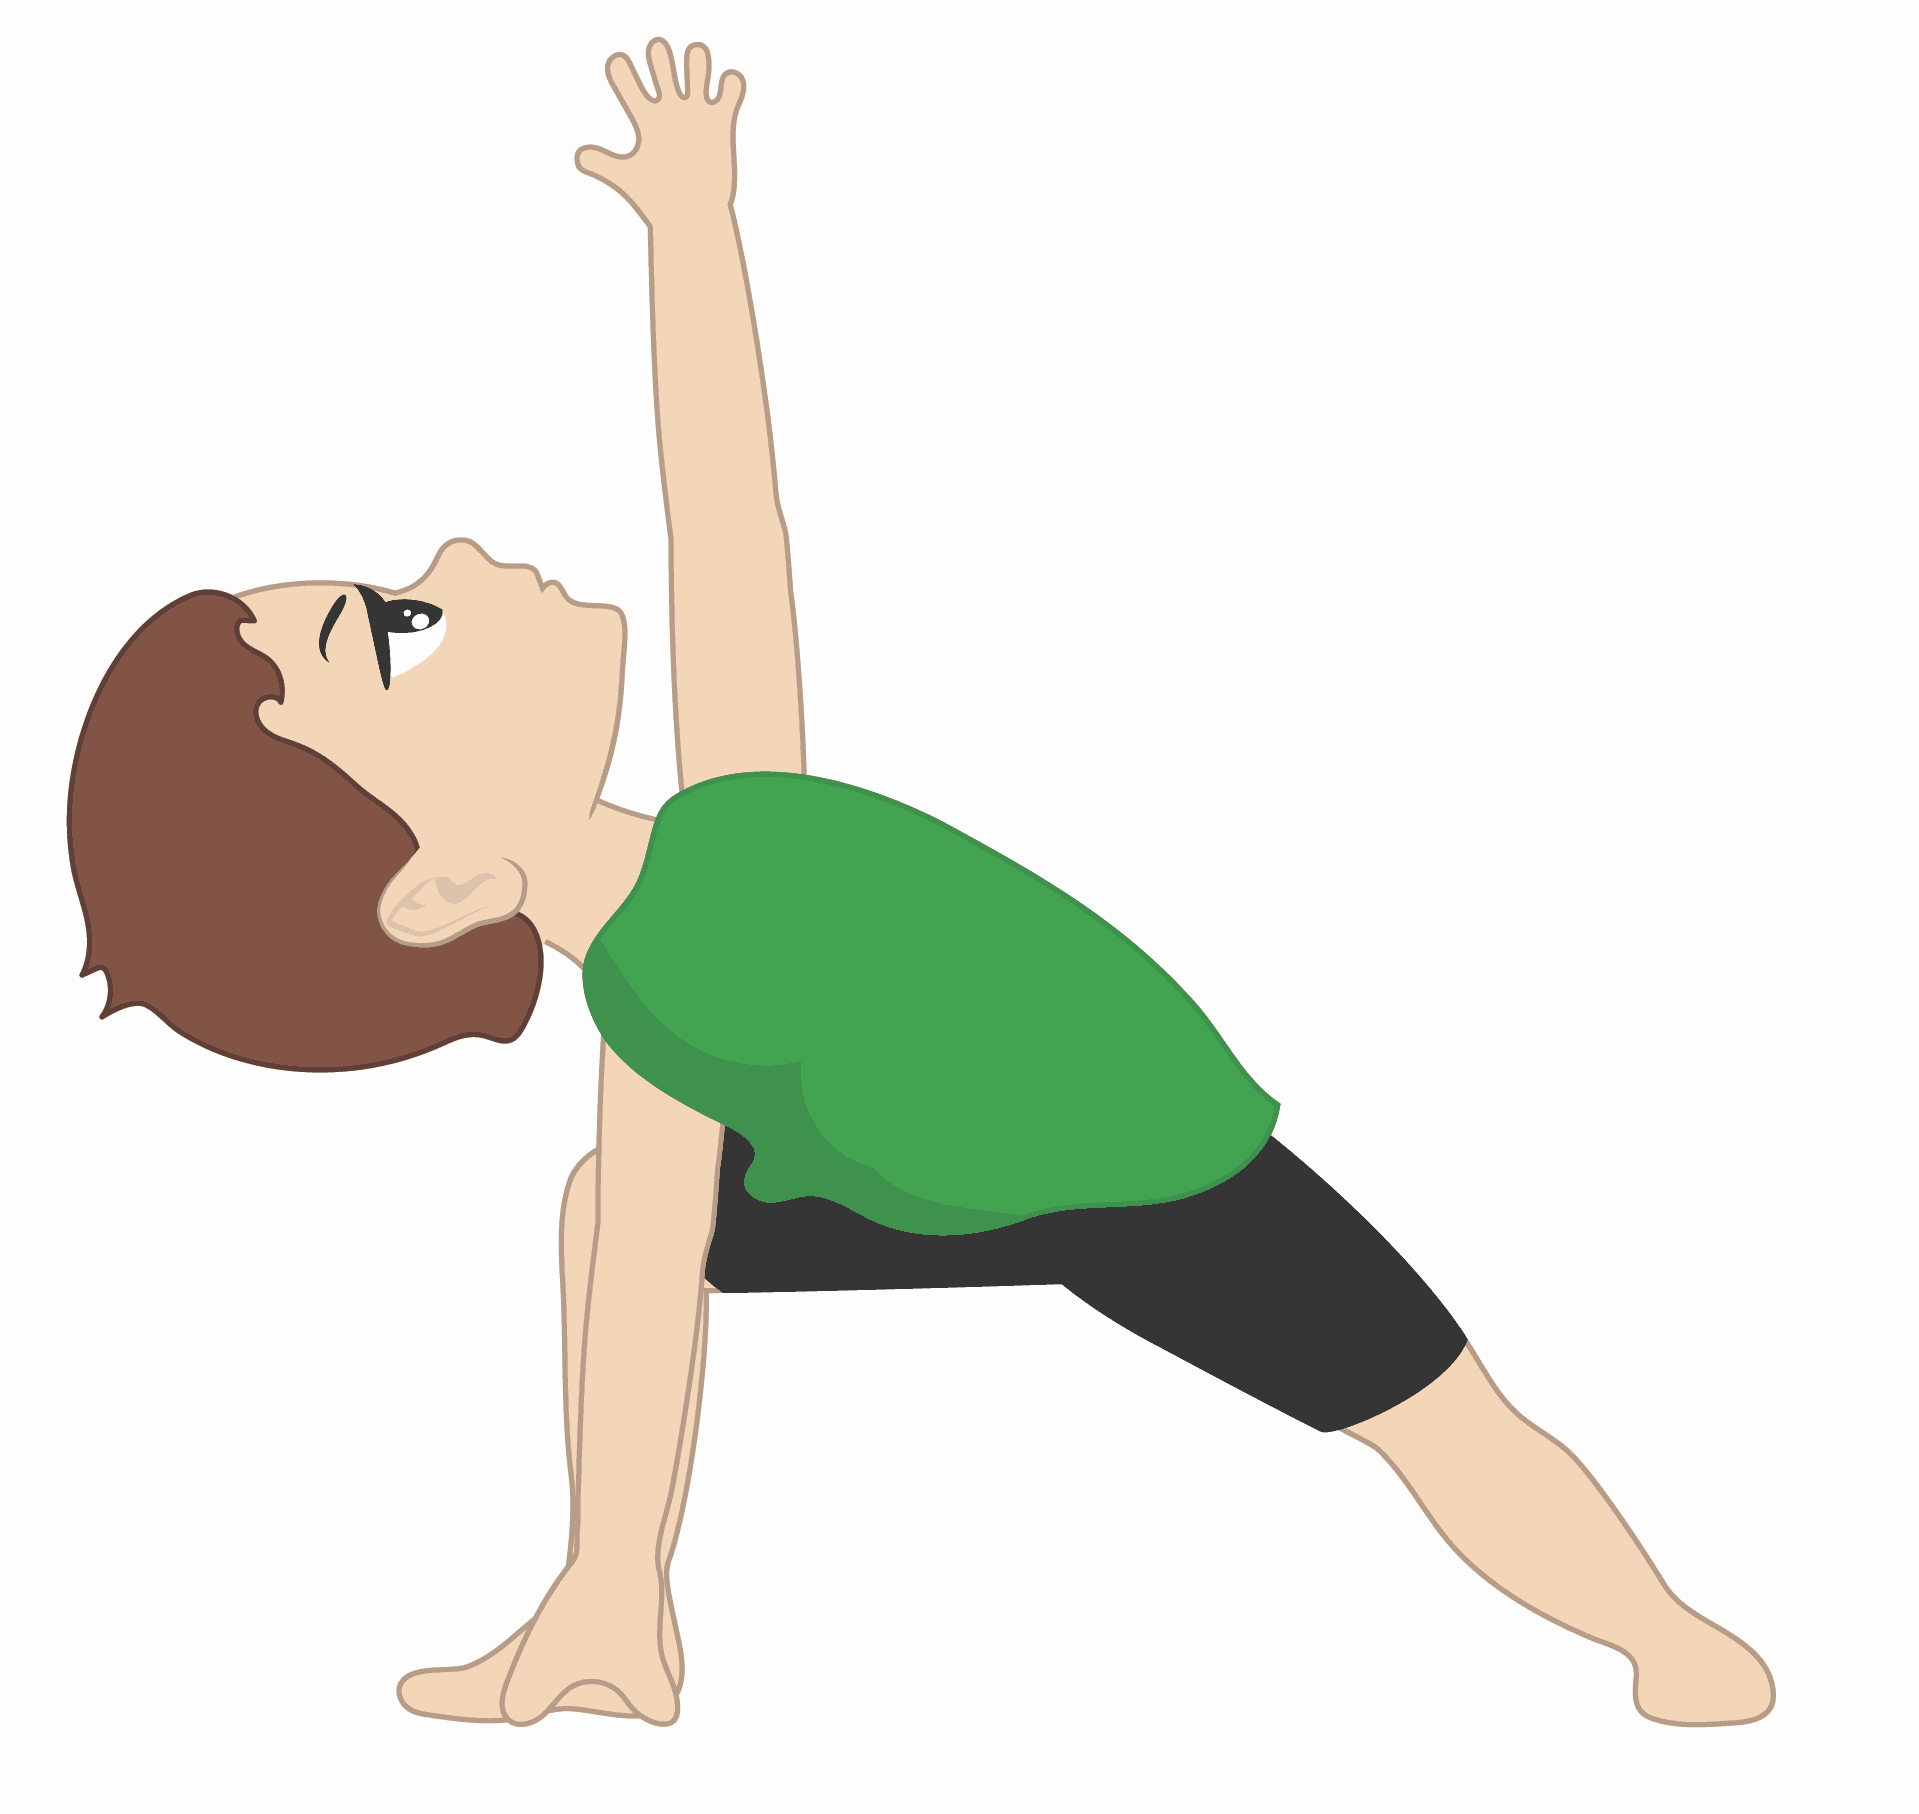 child doing extended side angle pose for kids, with legs in warrior 2 stance and one hand on the floor, the other hand is reaching up